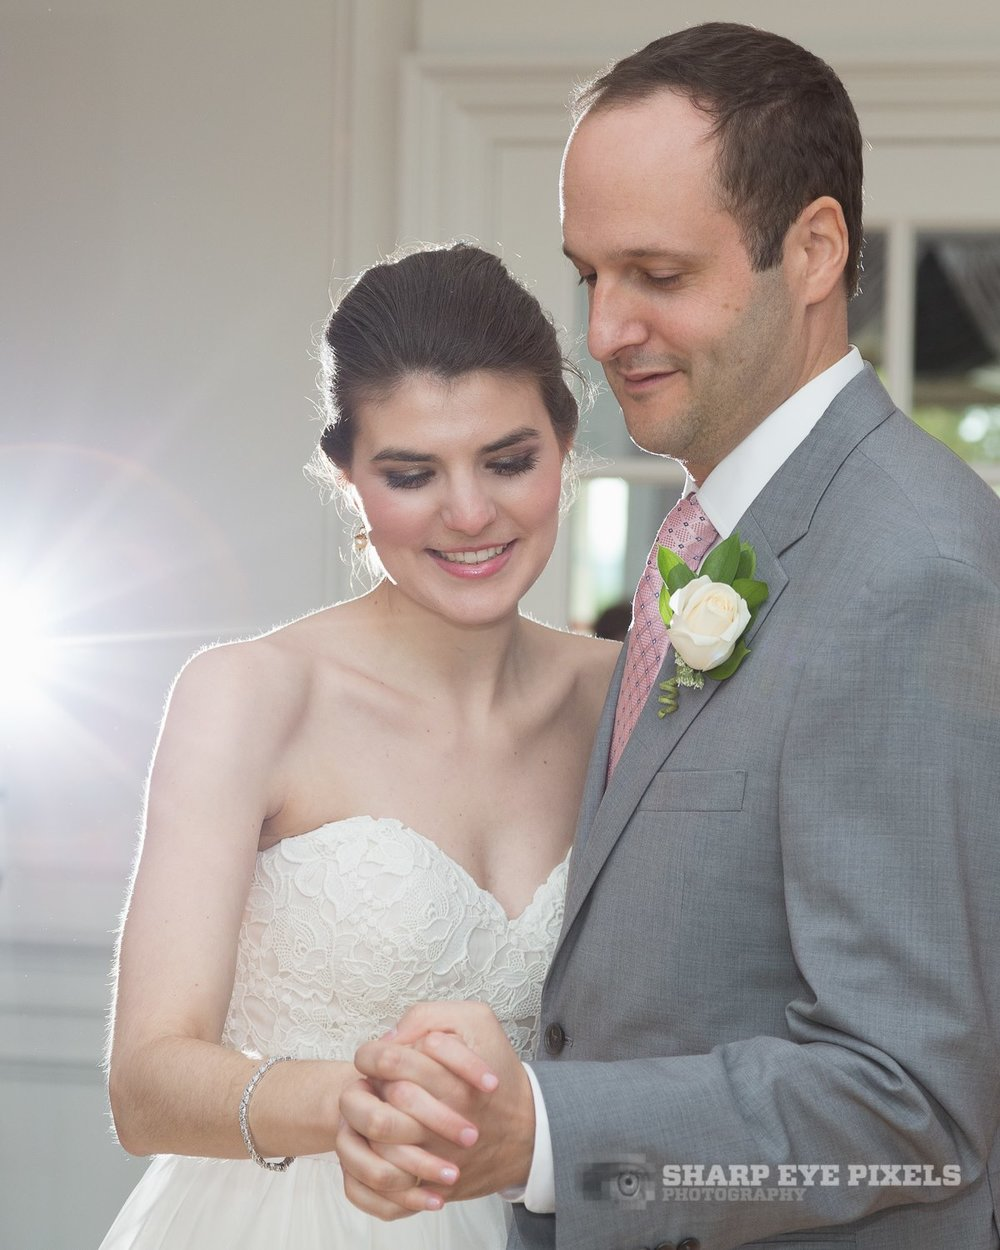 Laura + Neil on May 1, 2016 ♥ Sharp Eye Pixels at Basking Ridge Country Club (Basking RIdge, NJ)